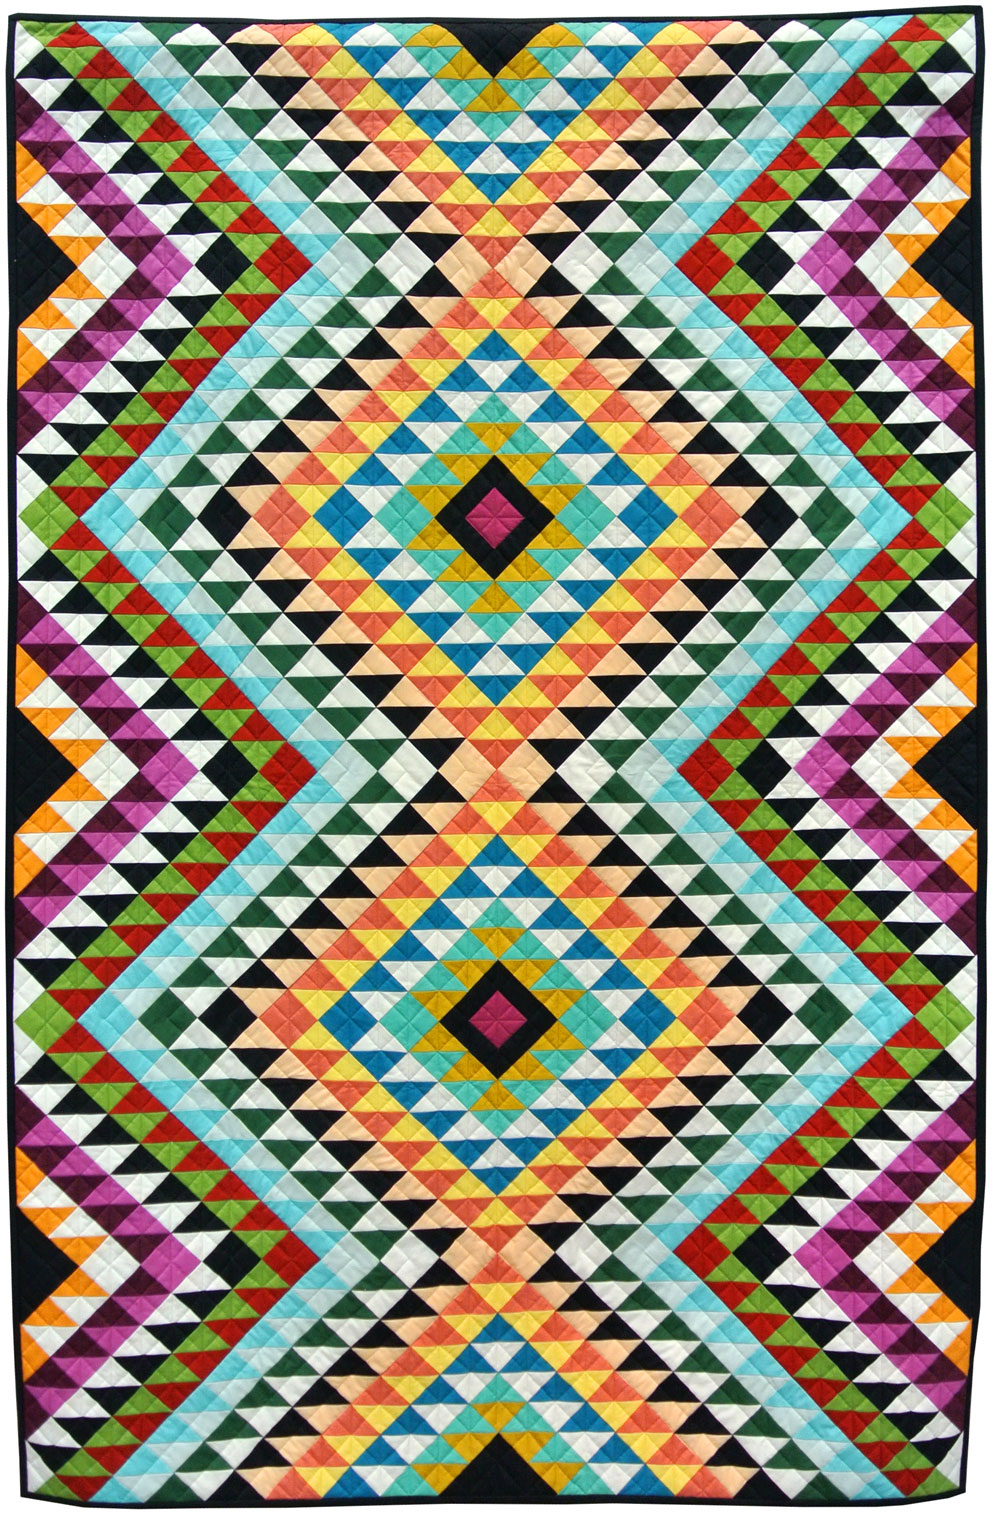 Ultimate Guide to the Best Quilt Shows in the USA | Suzy Quilts https://suzyquilts.com/best-quilt-shows-usa